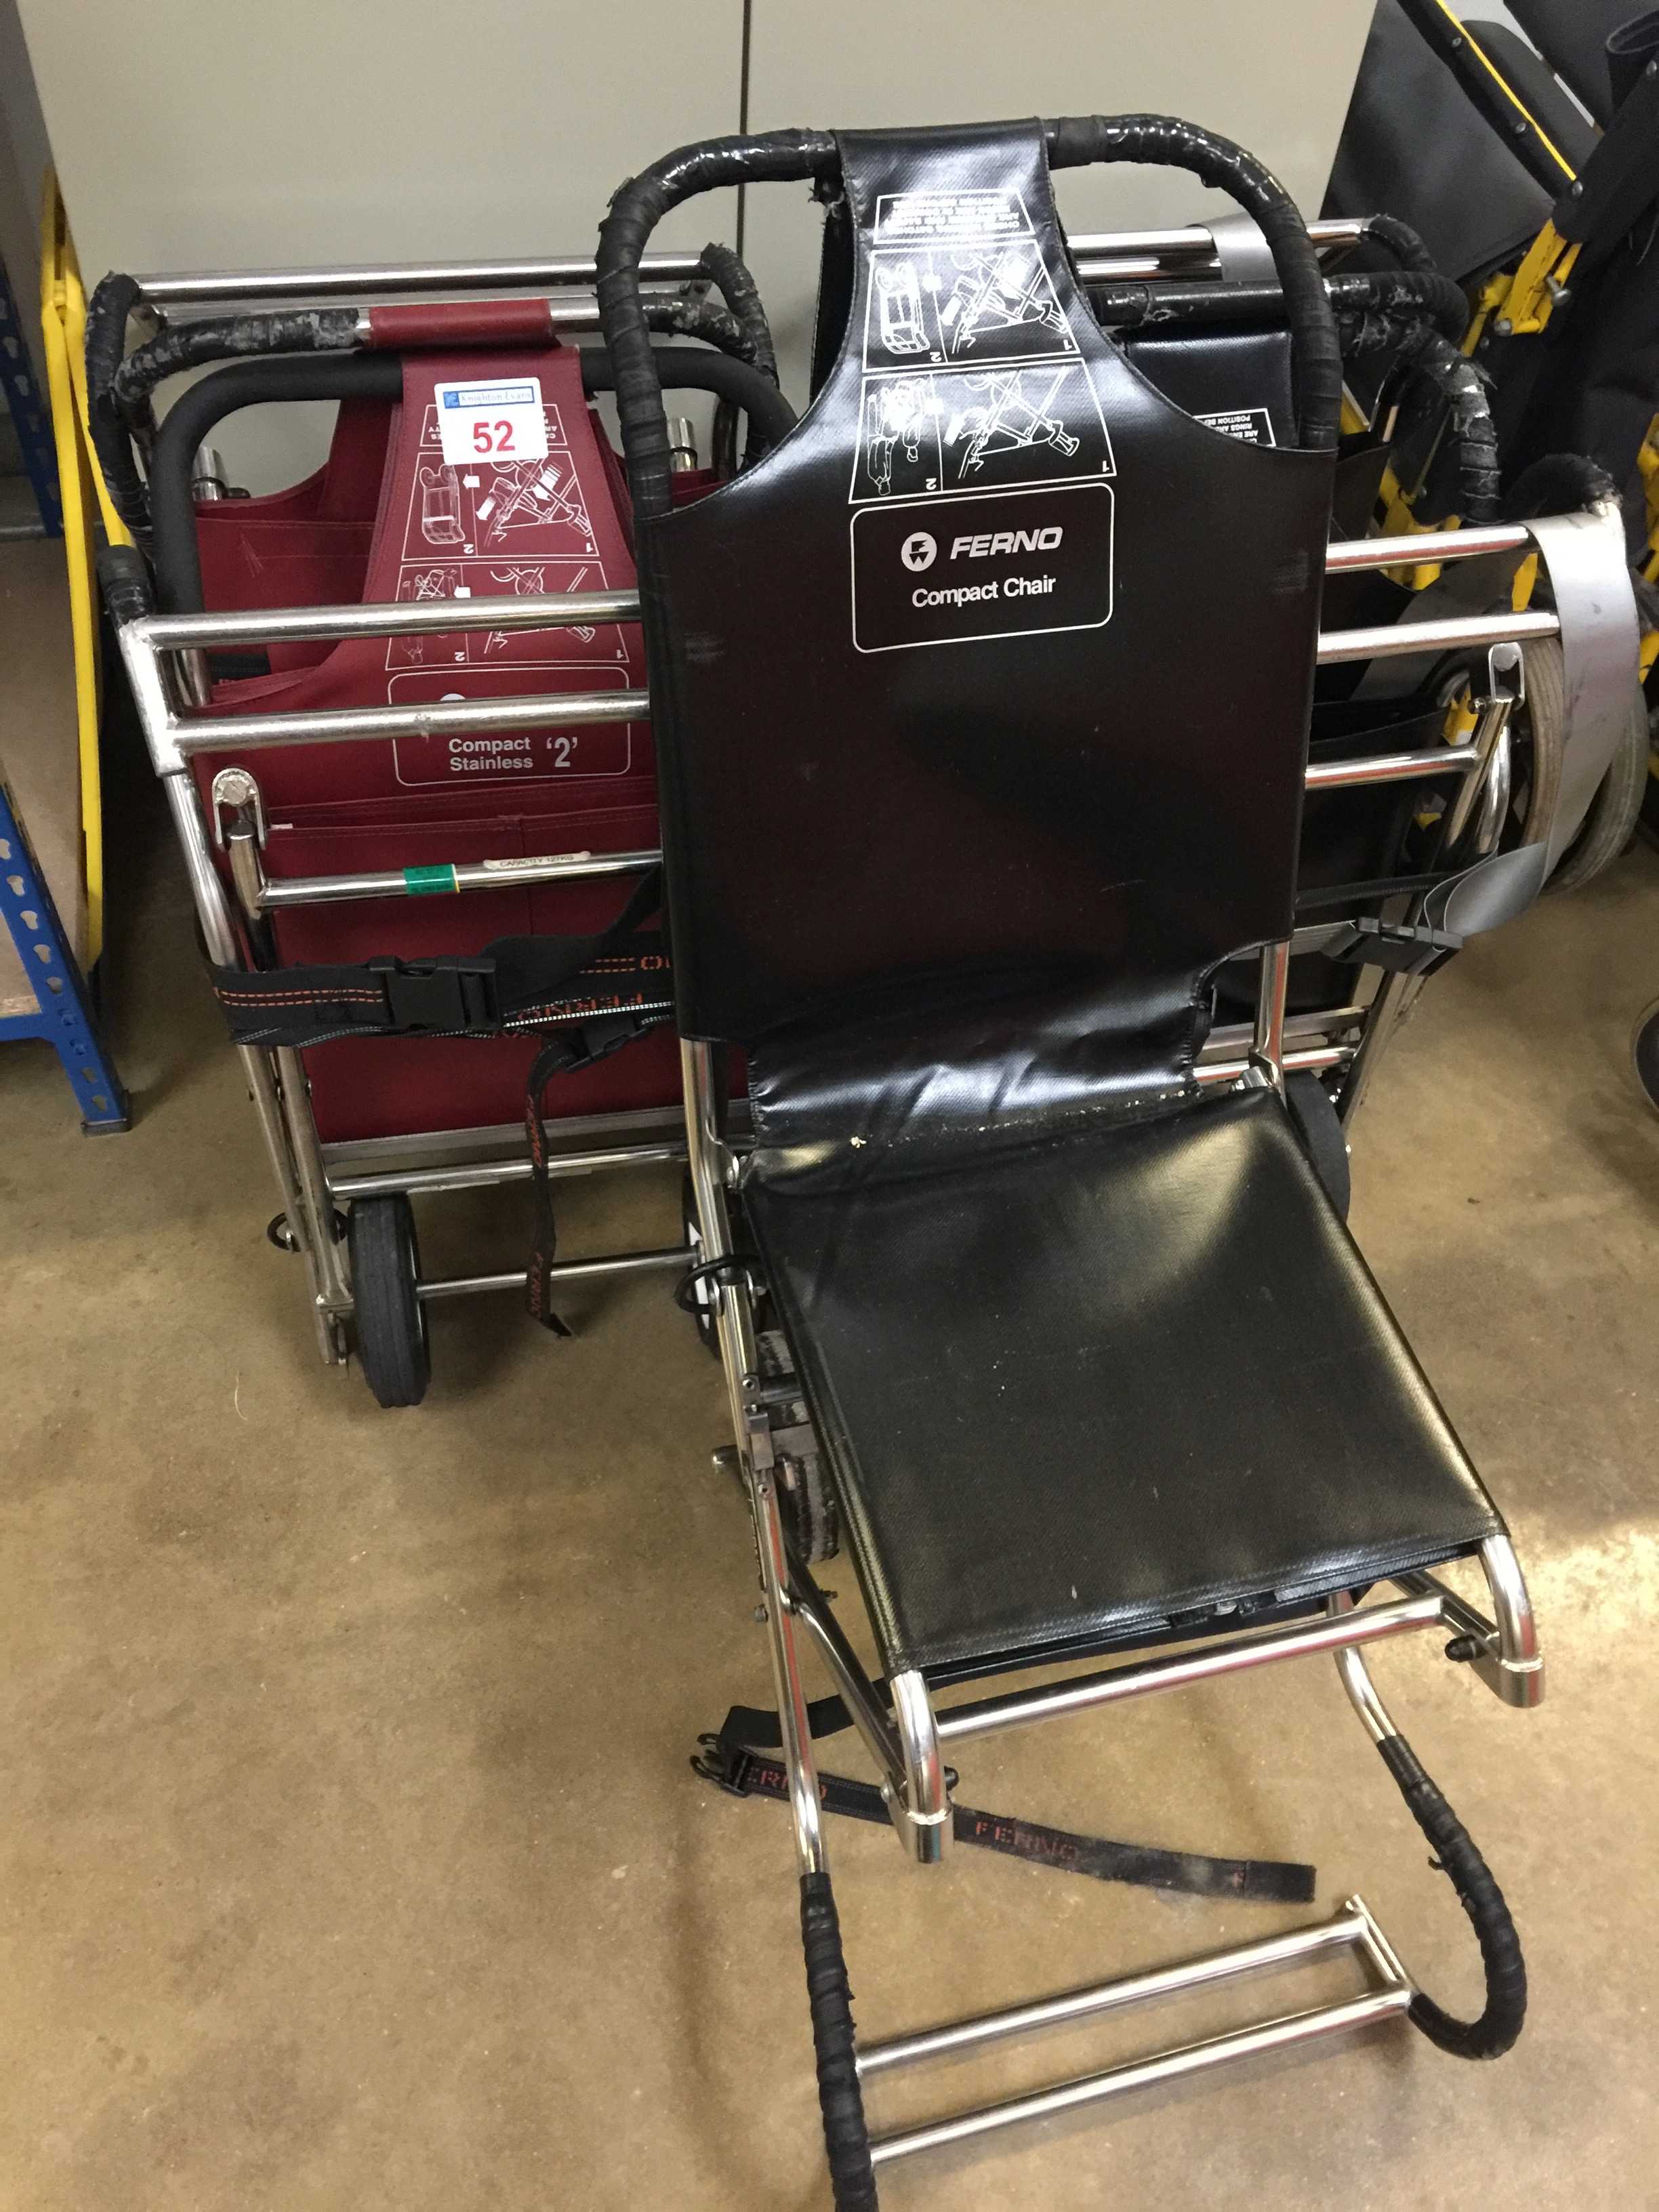 Lot 52 - 5 Ferno Compact carry chairs